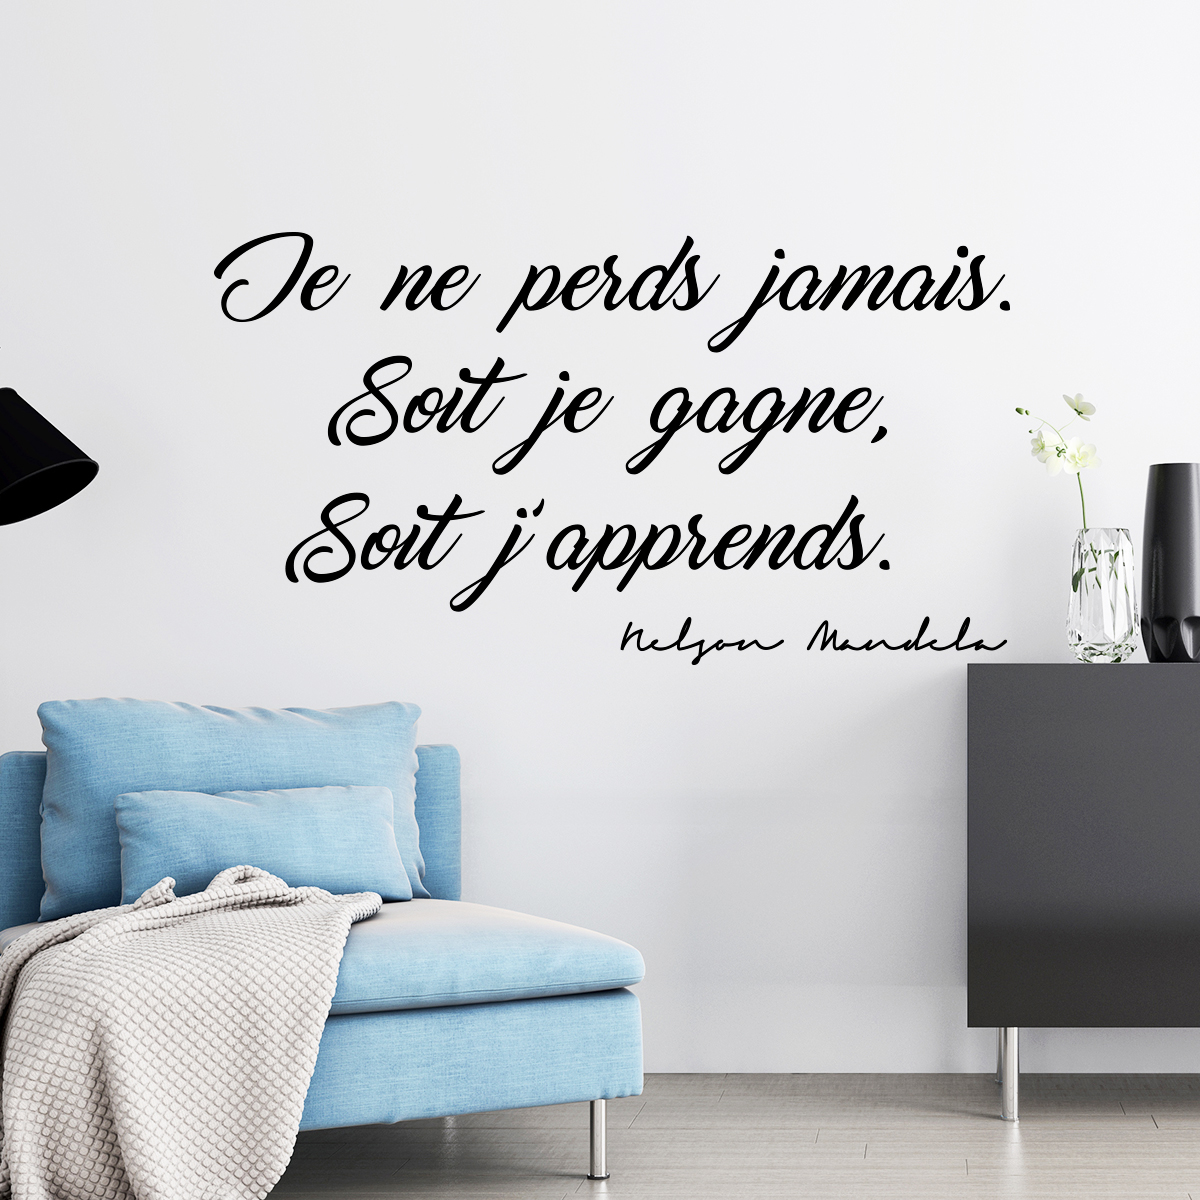 sticker citation nelson mandela je ne perds jamais stickers citations fran ais ambiance. Black Bedroom Furniture Sets. Home Design Ideas